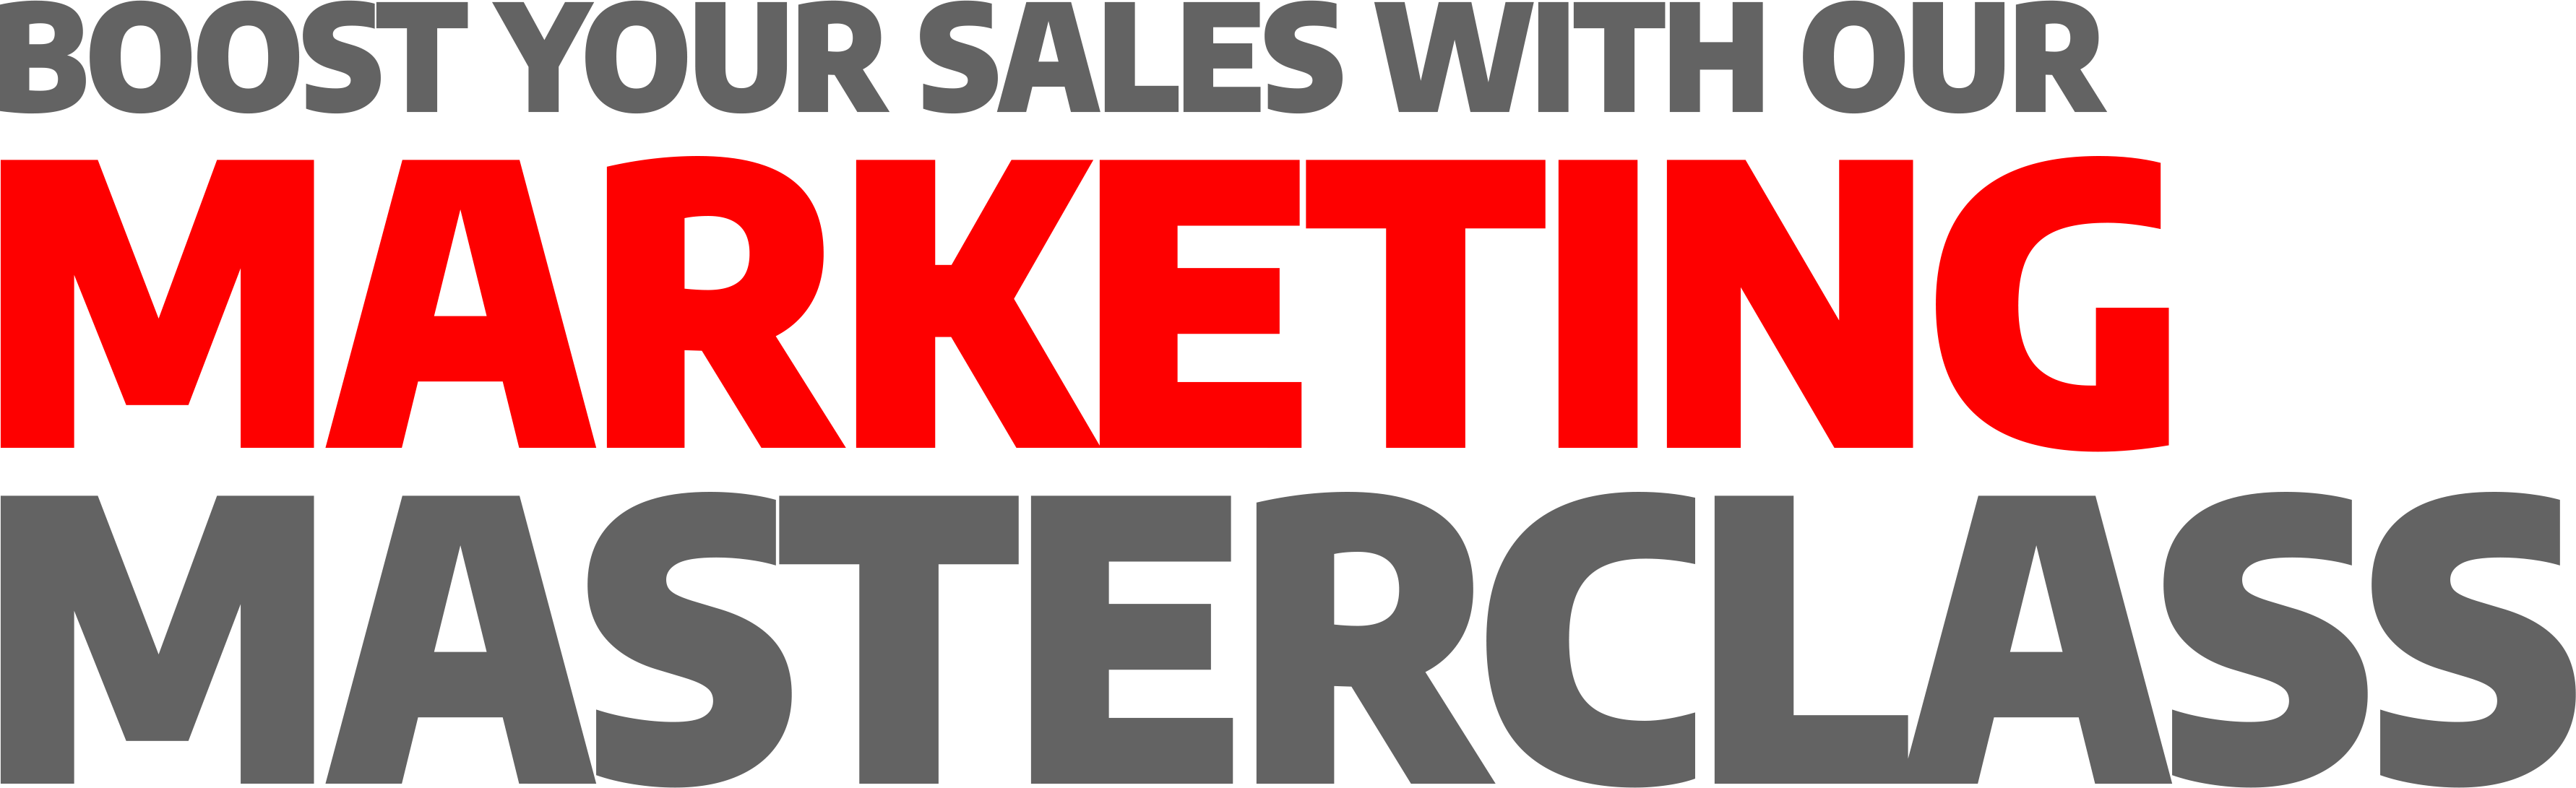 Boost Your Sales with our Marketing Masterclass (Download Page)